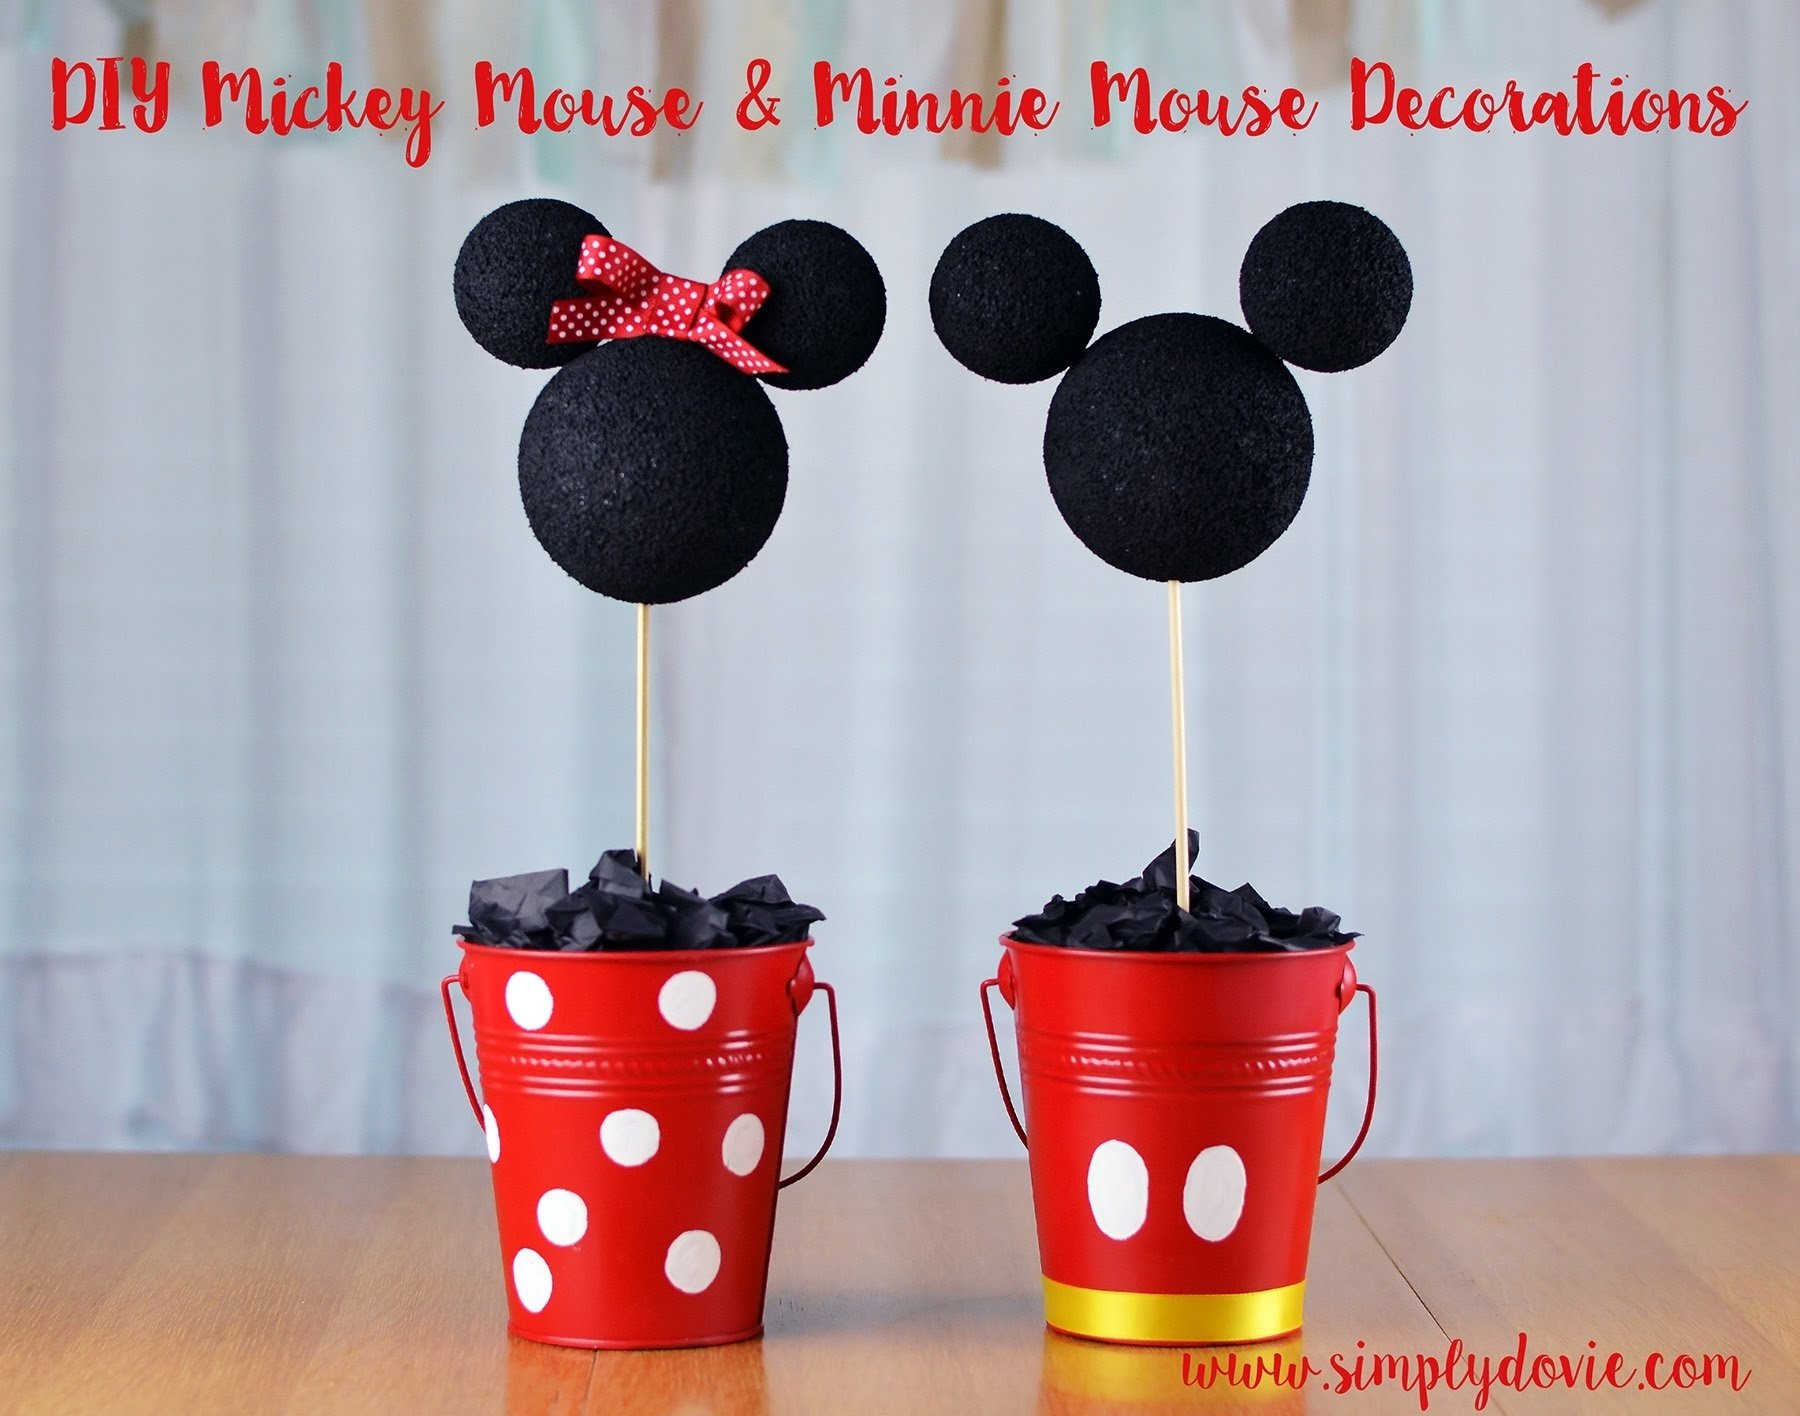 10 Pretty Minnie And Mickey Mouse Party Ideas diy minnie mickey birthday decorations with simply dovie youtube 2 2021